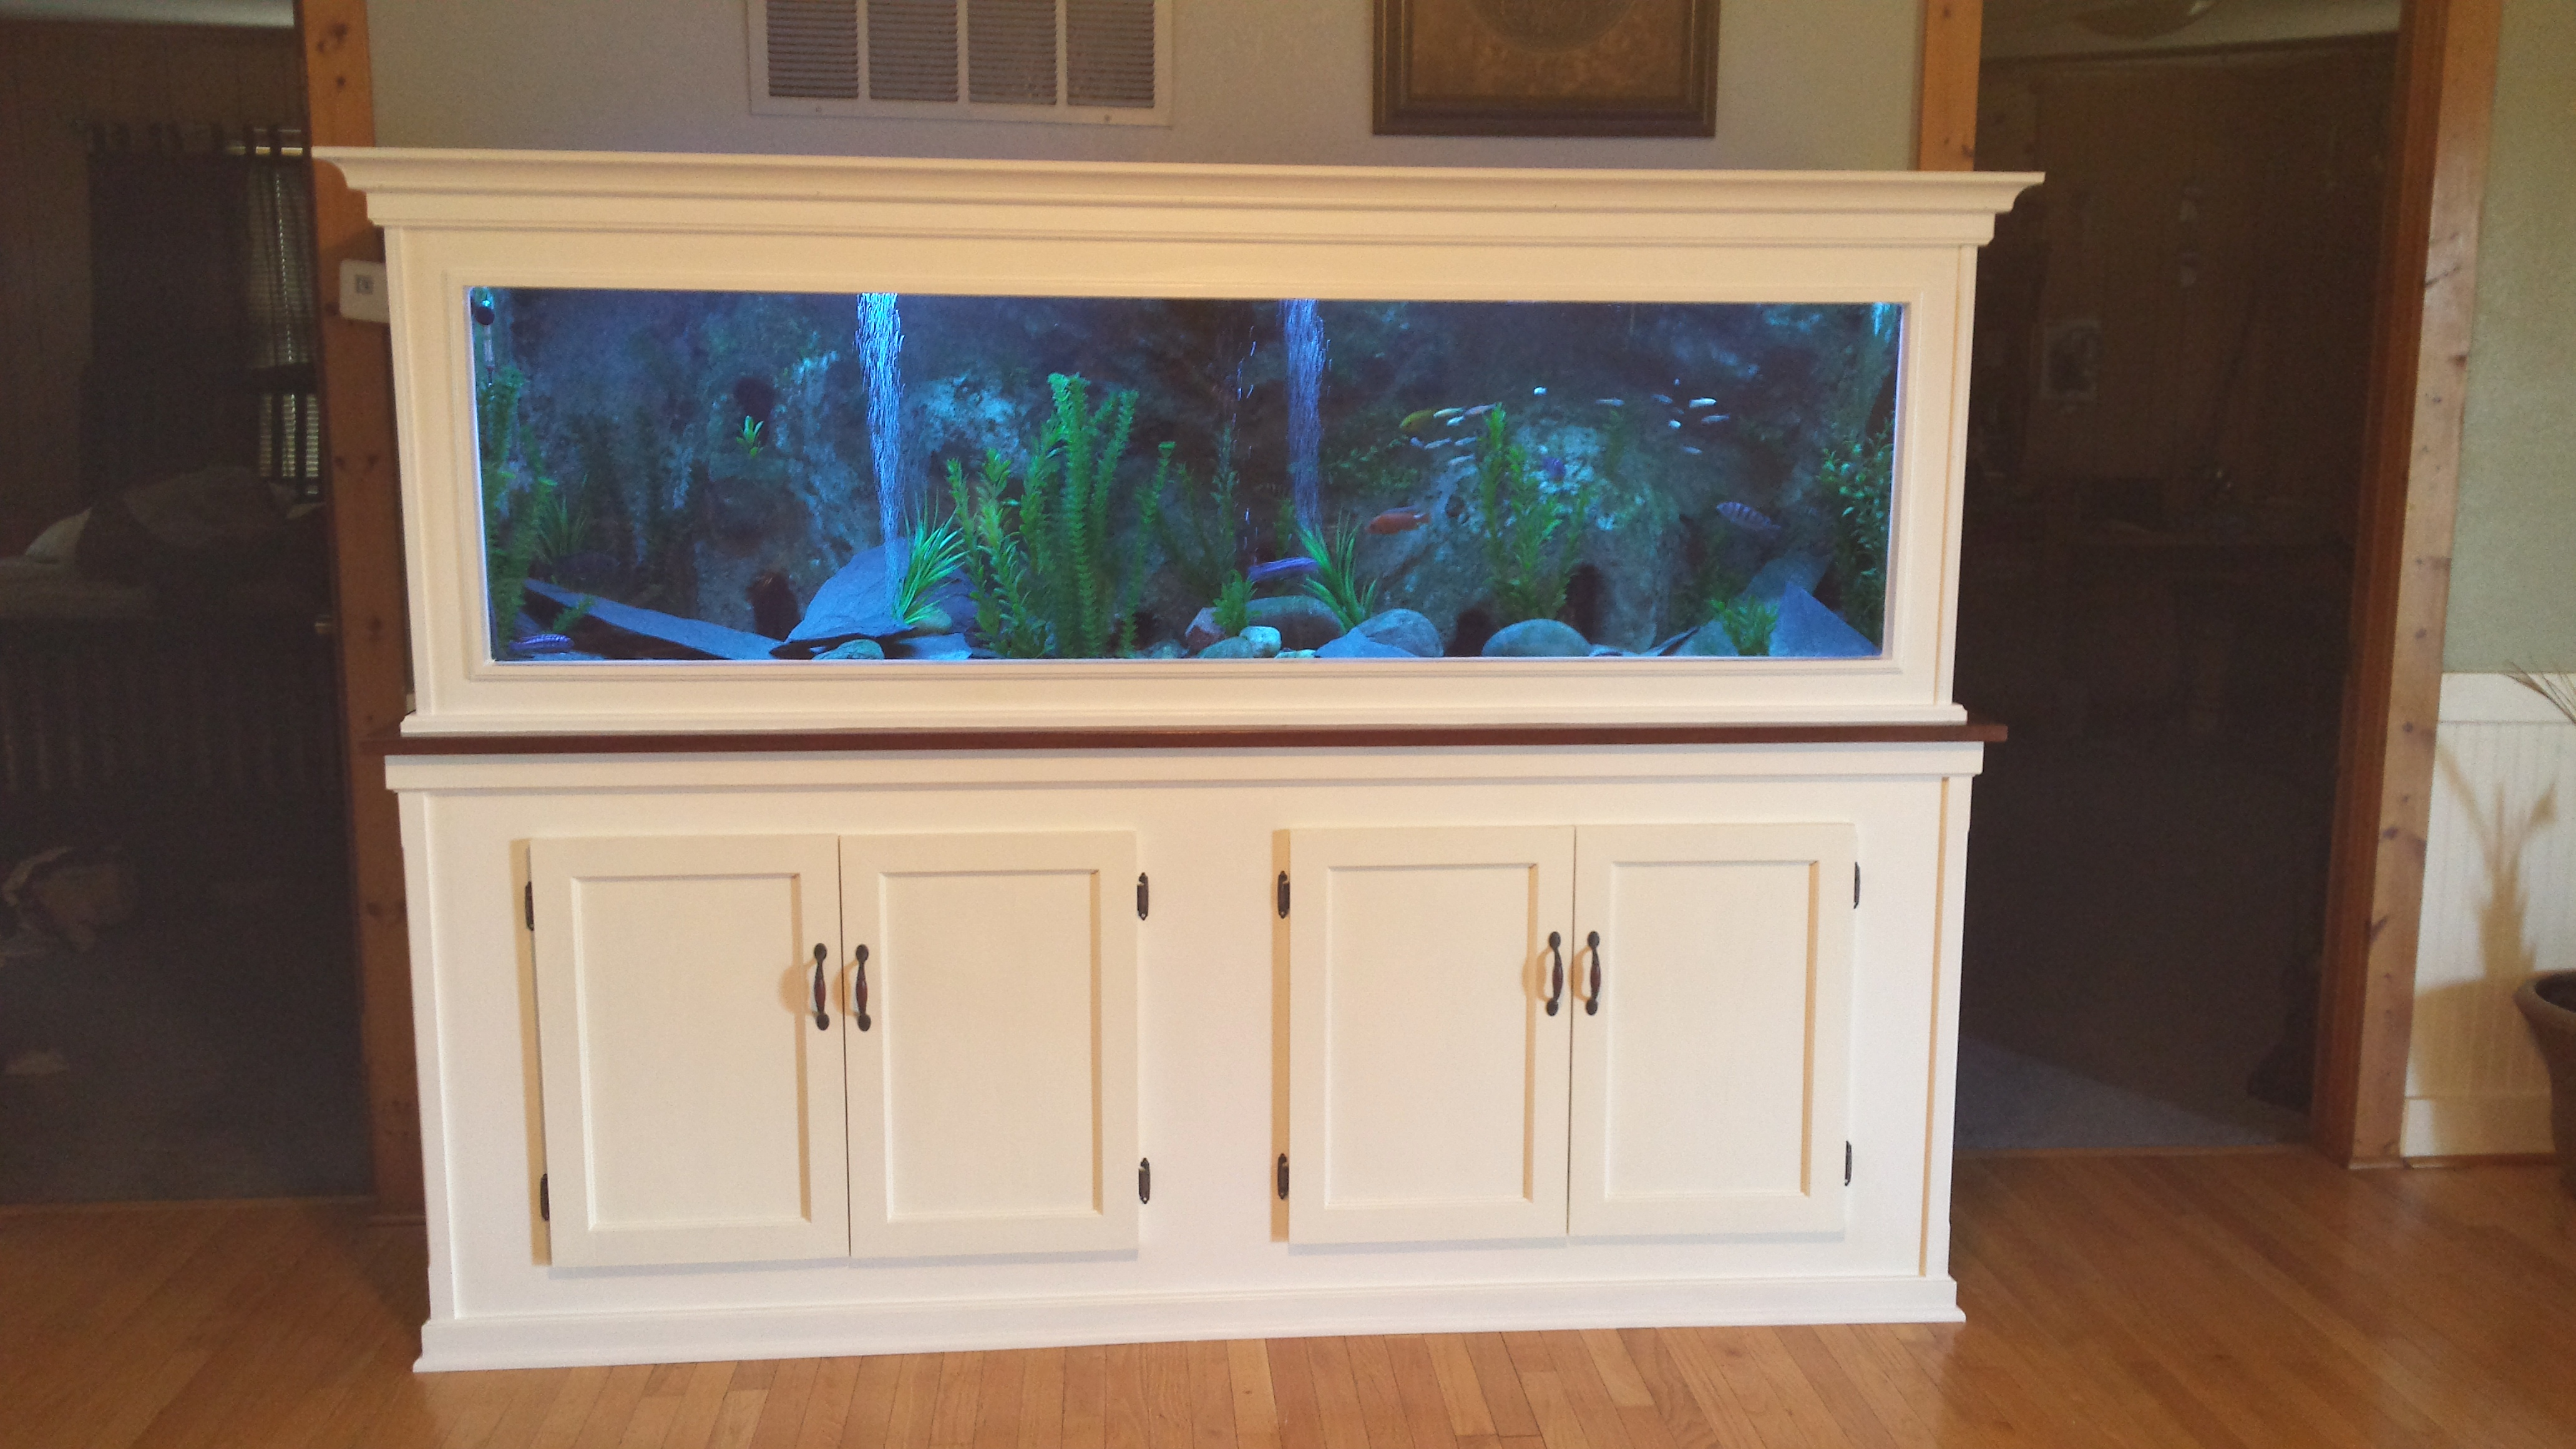 209 gallon custom plywood tank with 3d back drop for Plywood fish tank